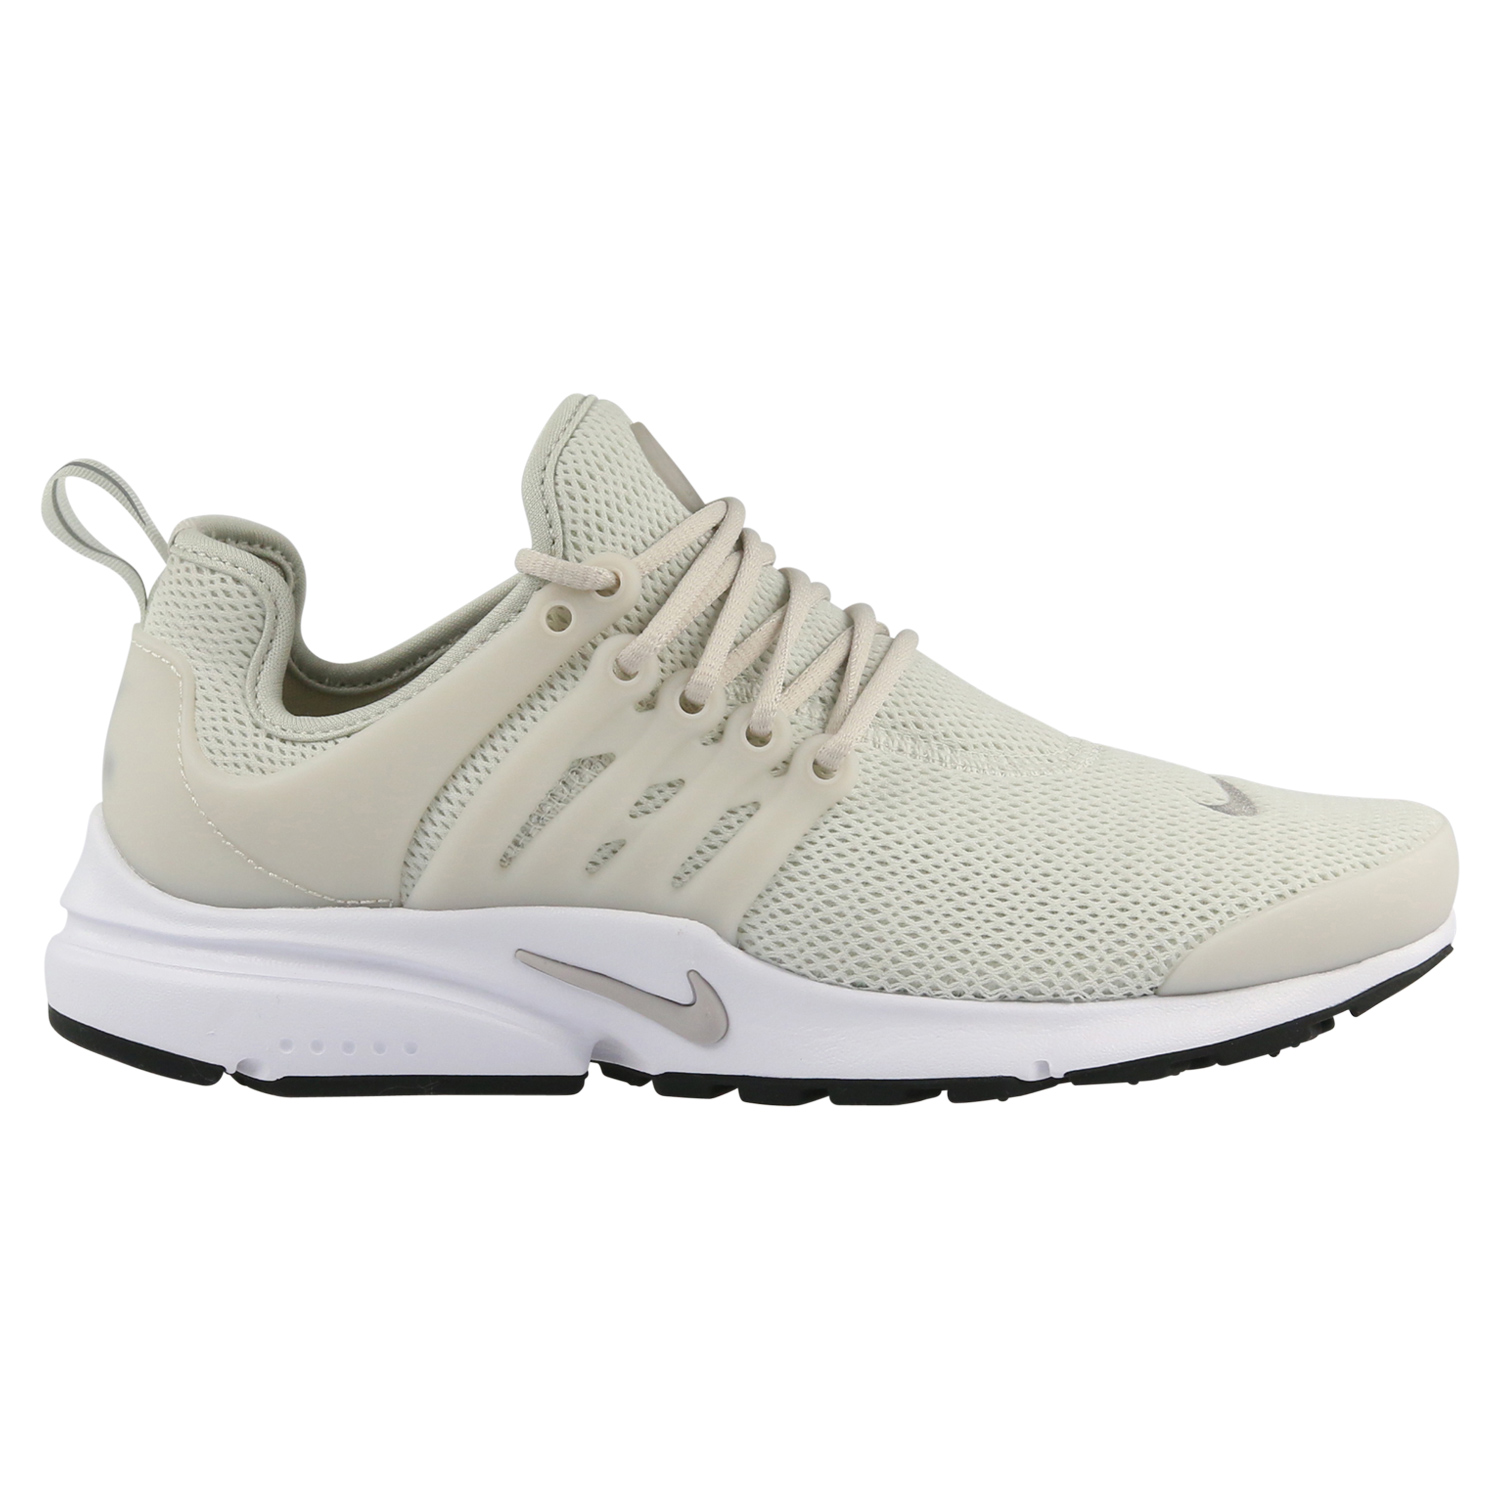 nike air presto damen sneaker schuhe turnschuhe hellgrau ebay. Black Bedroom Furniture Sets. Home Design Ideas